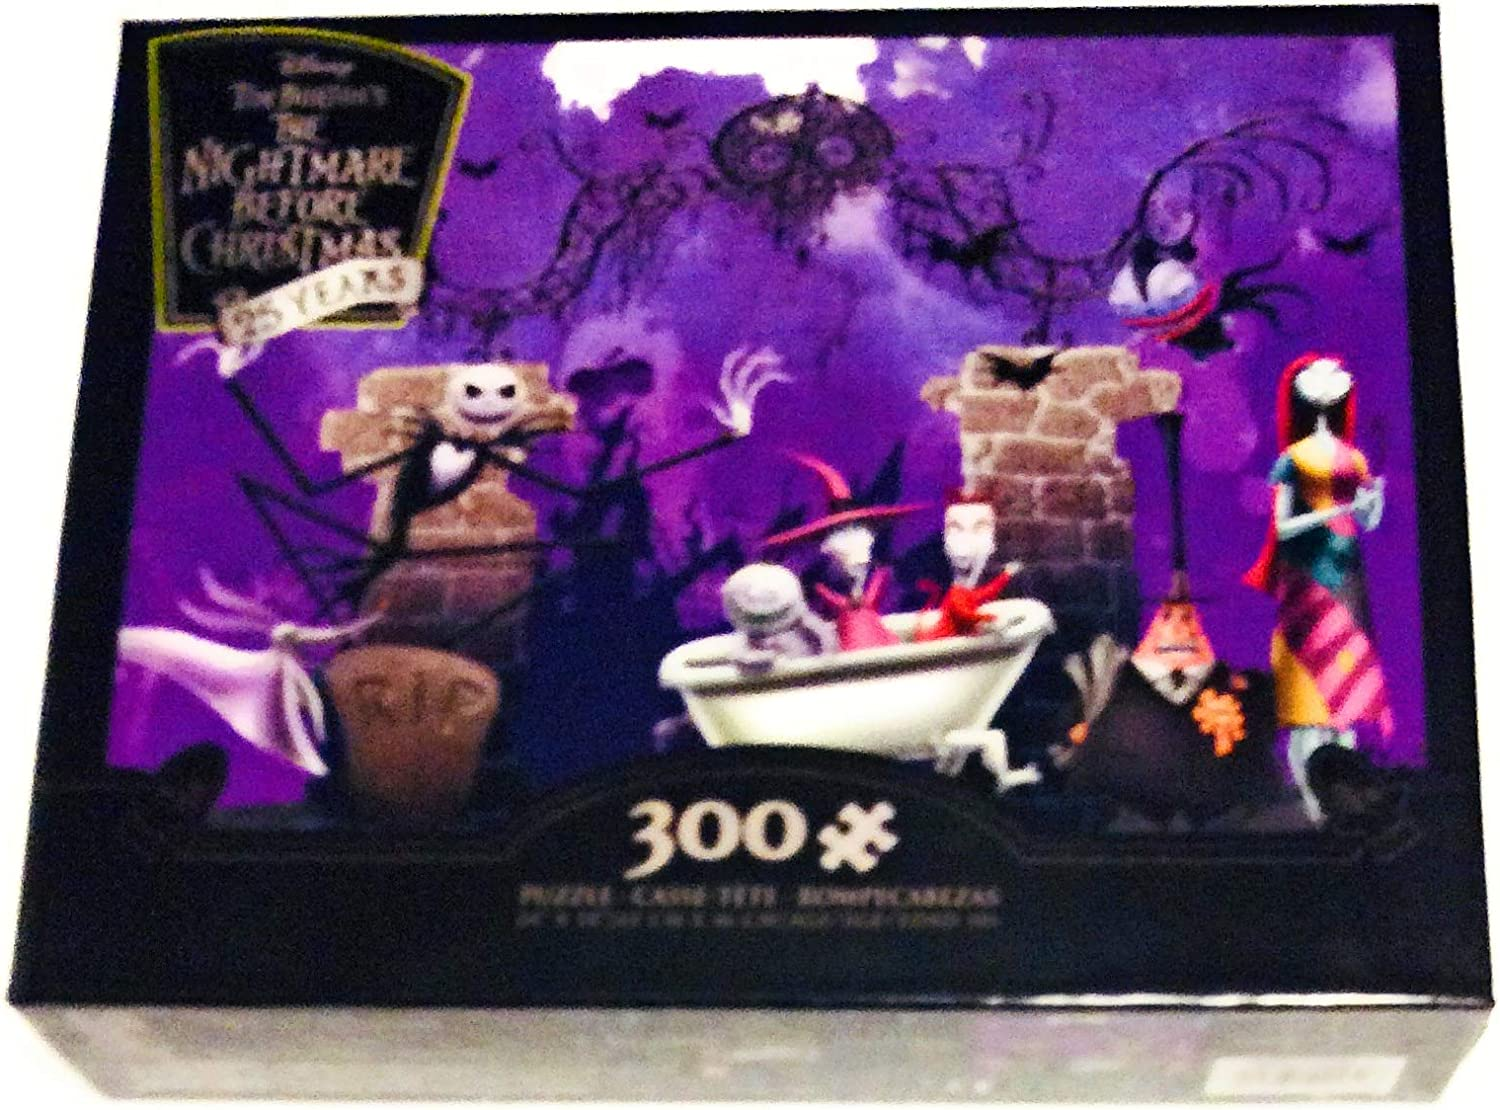 The Nightmare Before Christmas 25 Years 300-Piece Puzzle with Bonus Poster